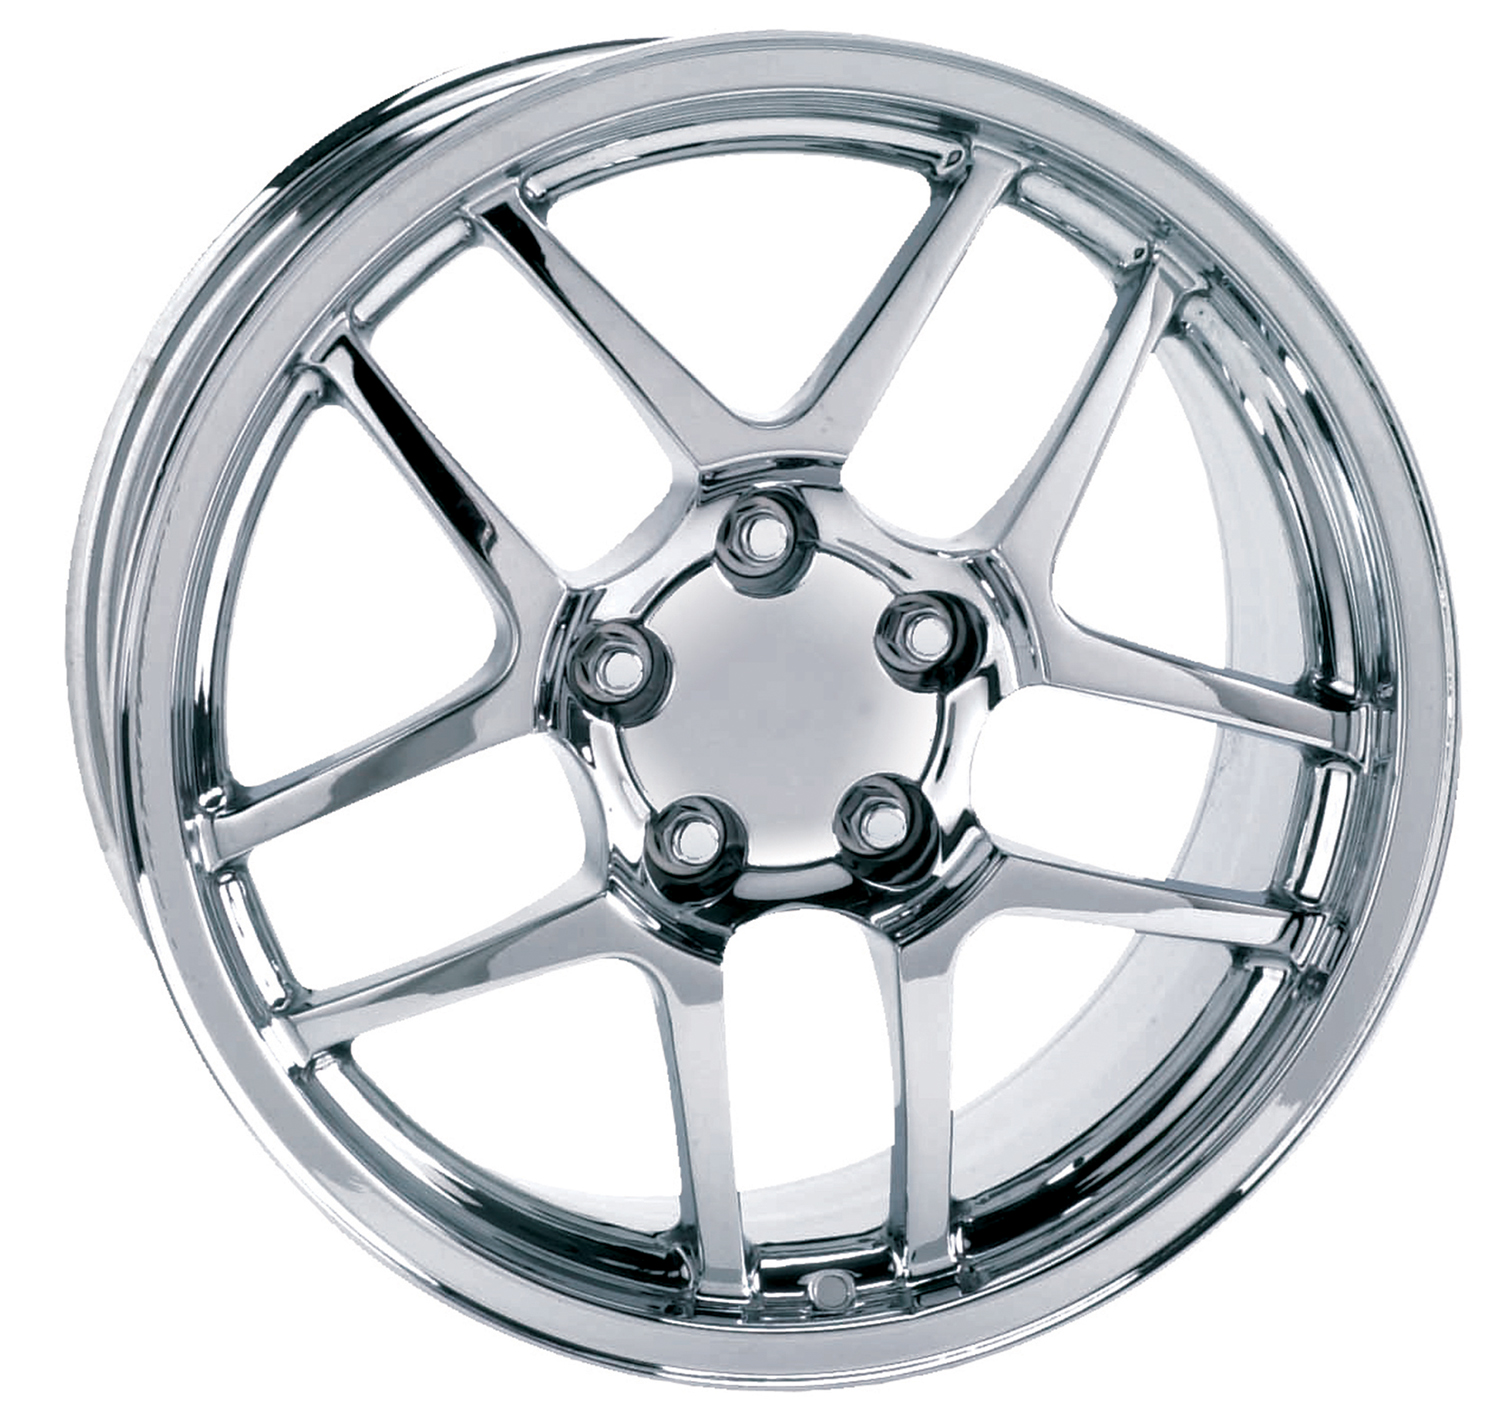 Chevrolet Corvette 1997-2004 17x9.5 5x4.75 +54 -C5 Z06 Style Wheel - Chrome With Cap